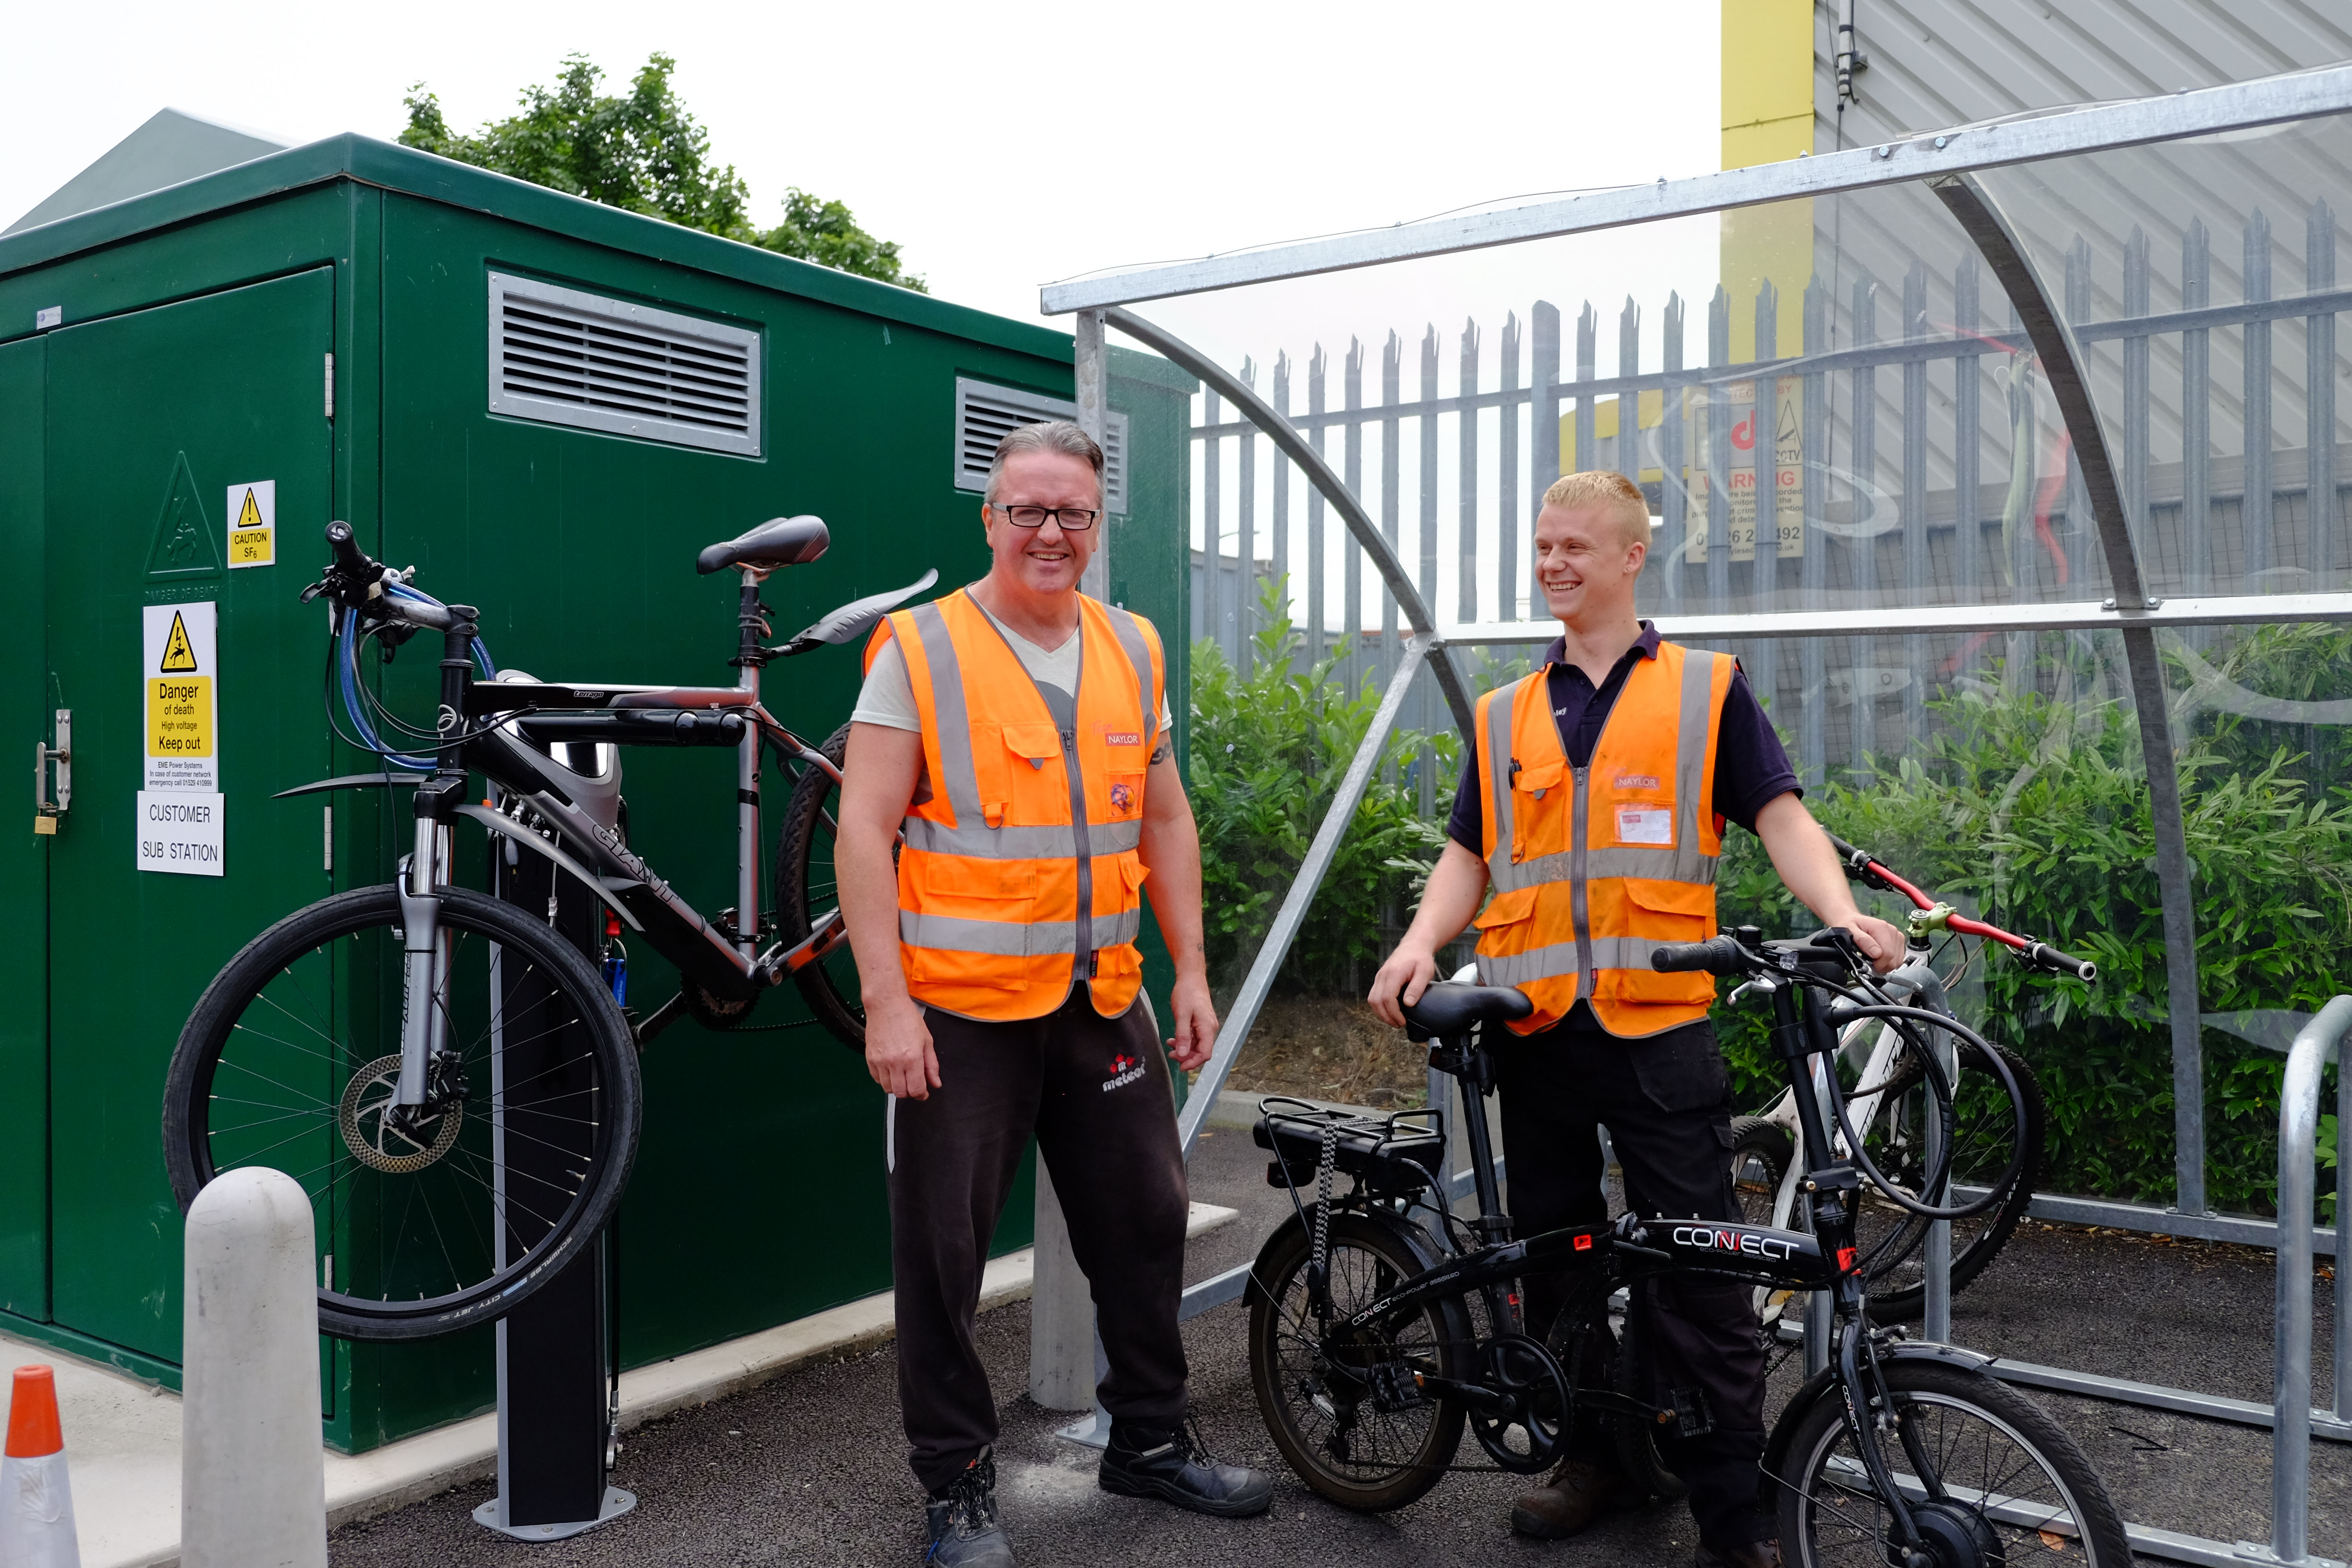 Naylor Industries in Barnsley gives staff a bicycle boost ready for Cycle September